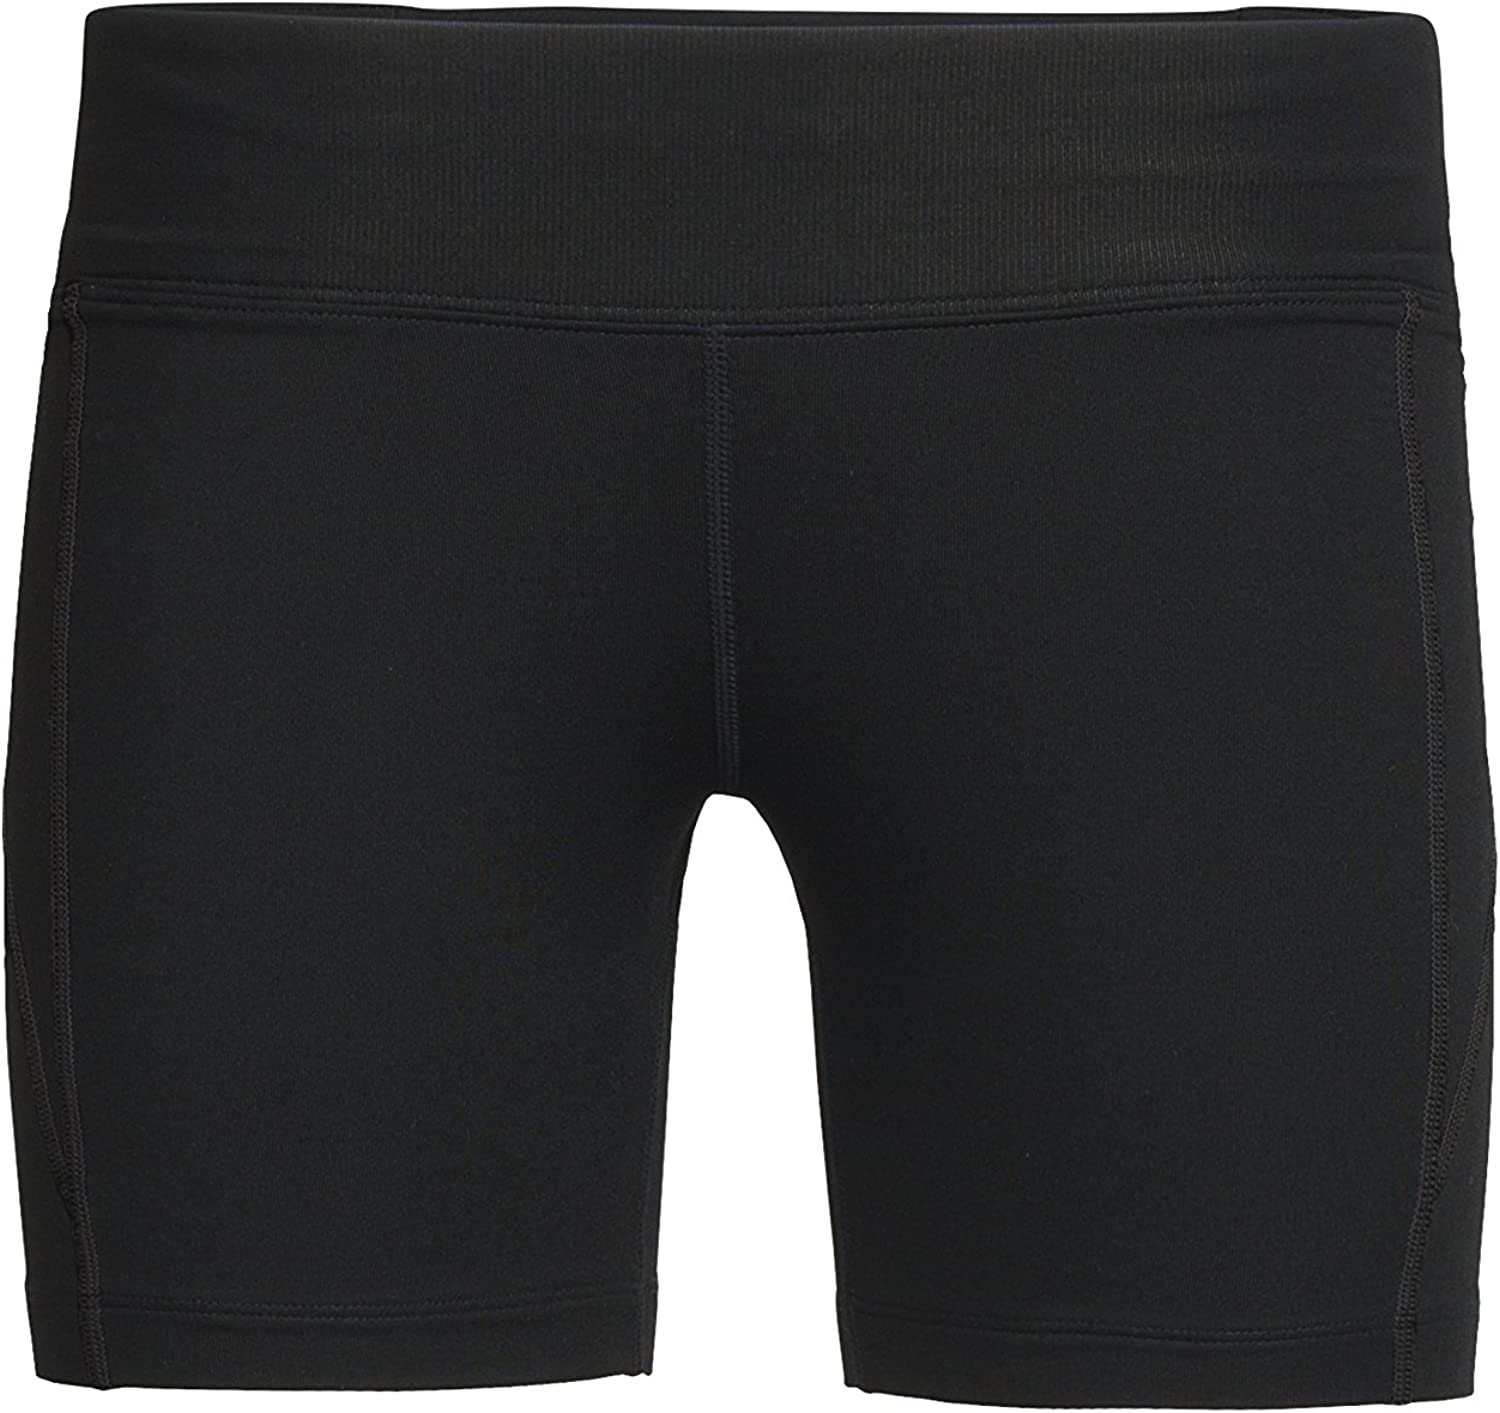 Icebreaker Merino Women's Comet Long Biking Shorts, Merino Wool